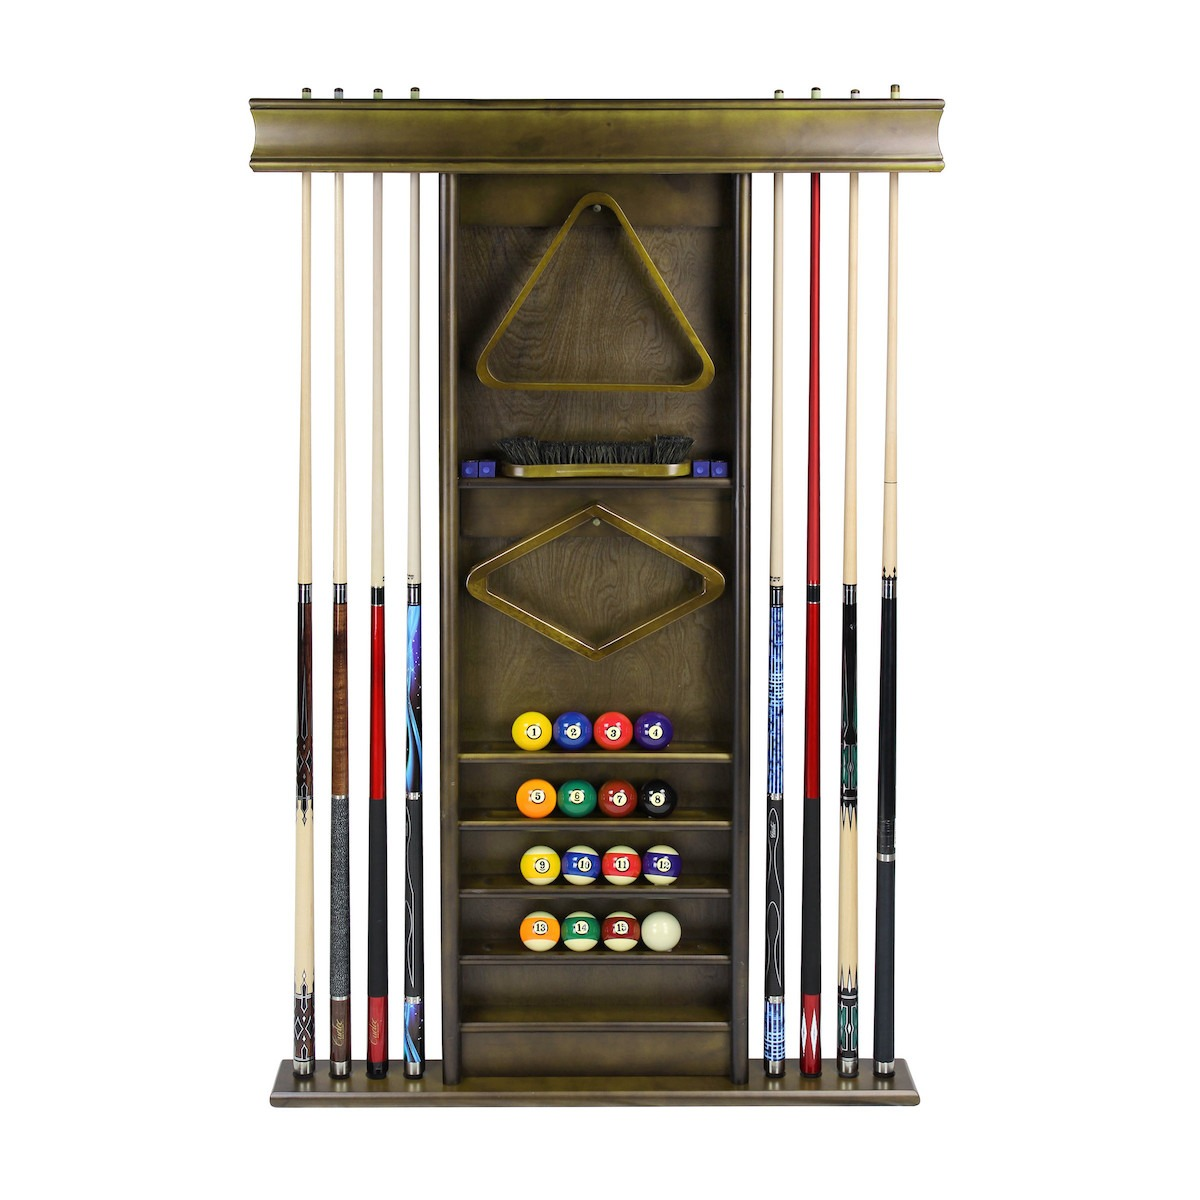 Deluxe Wall Cue Rack Cappuccino 1 - Eliminator Pool Table